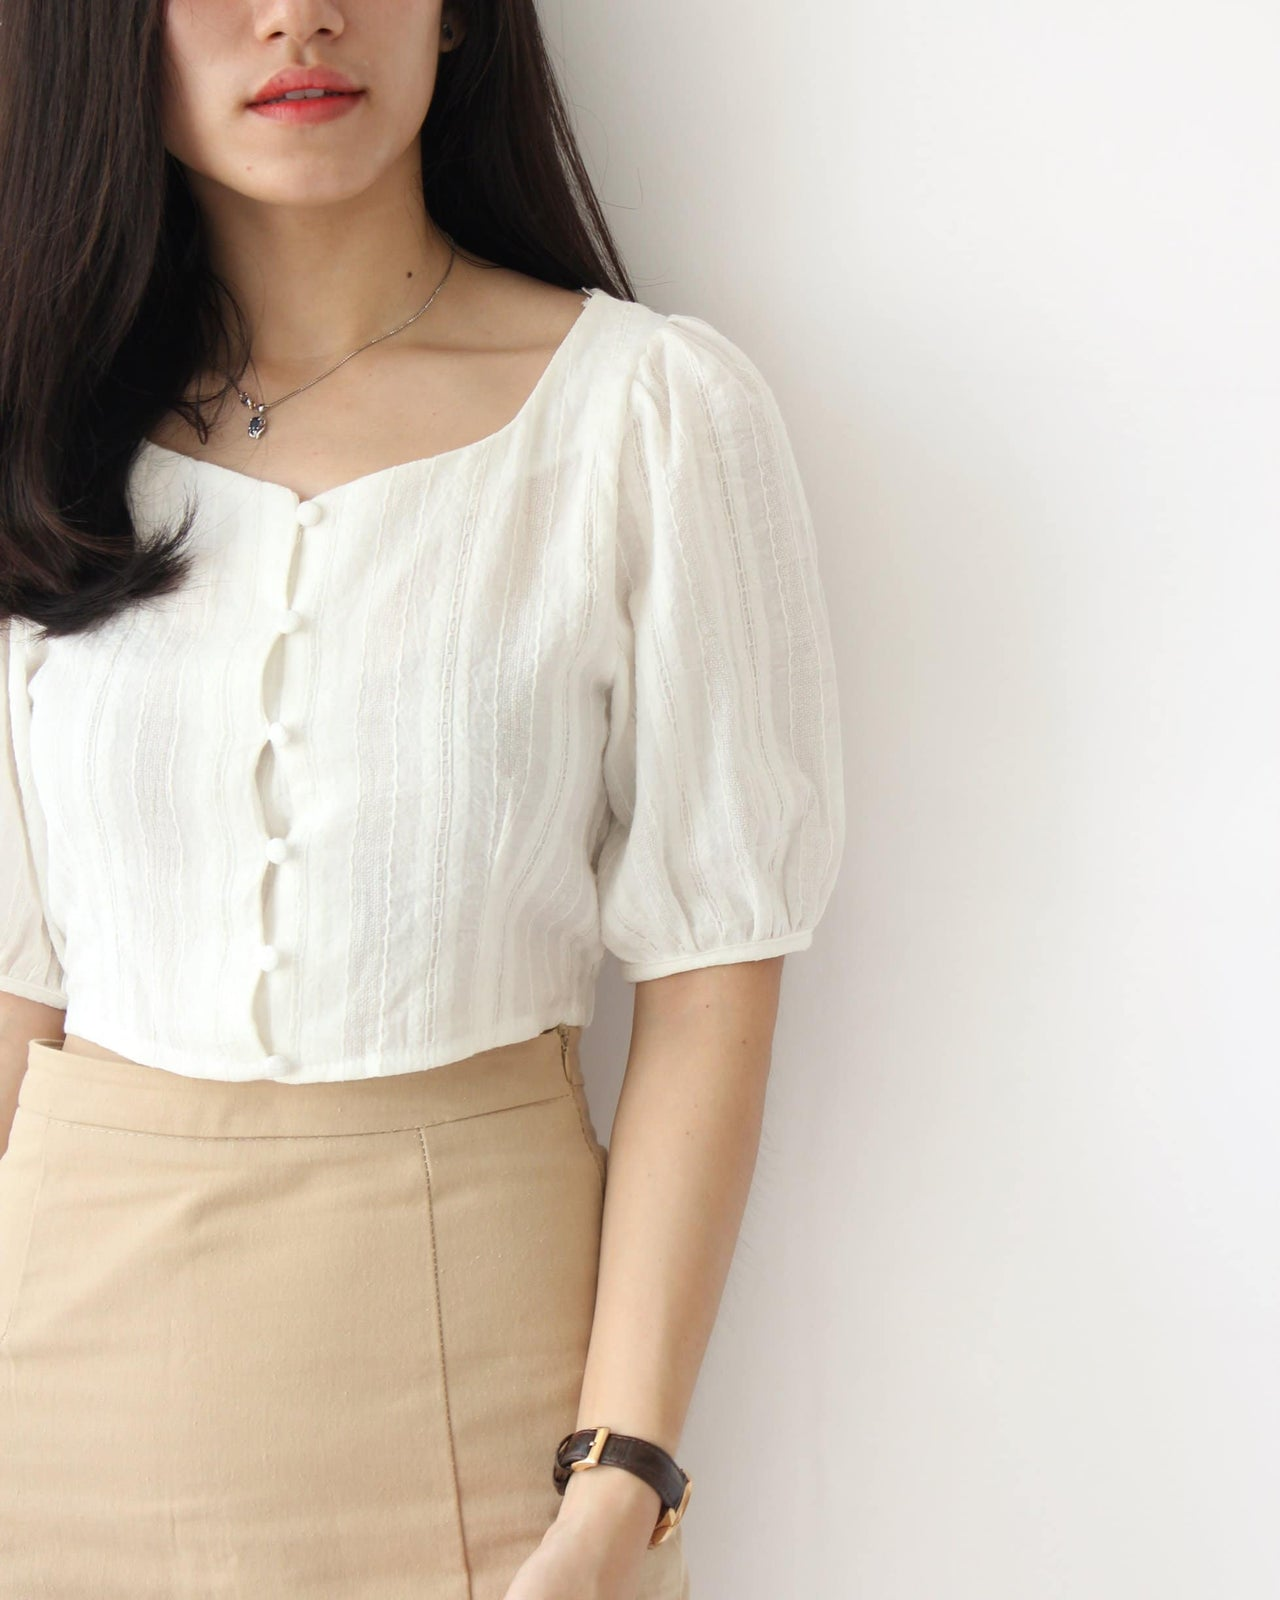 Doris Puffy Top - LovelyMadness Clothing Online Fashion Malaysia